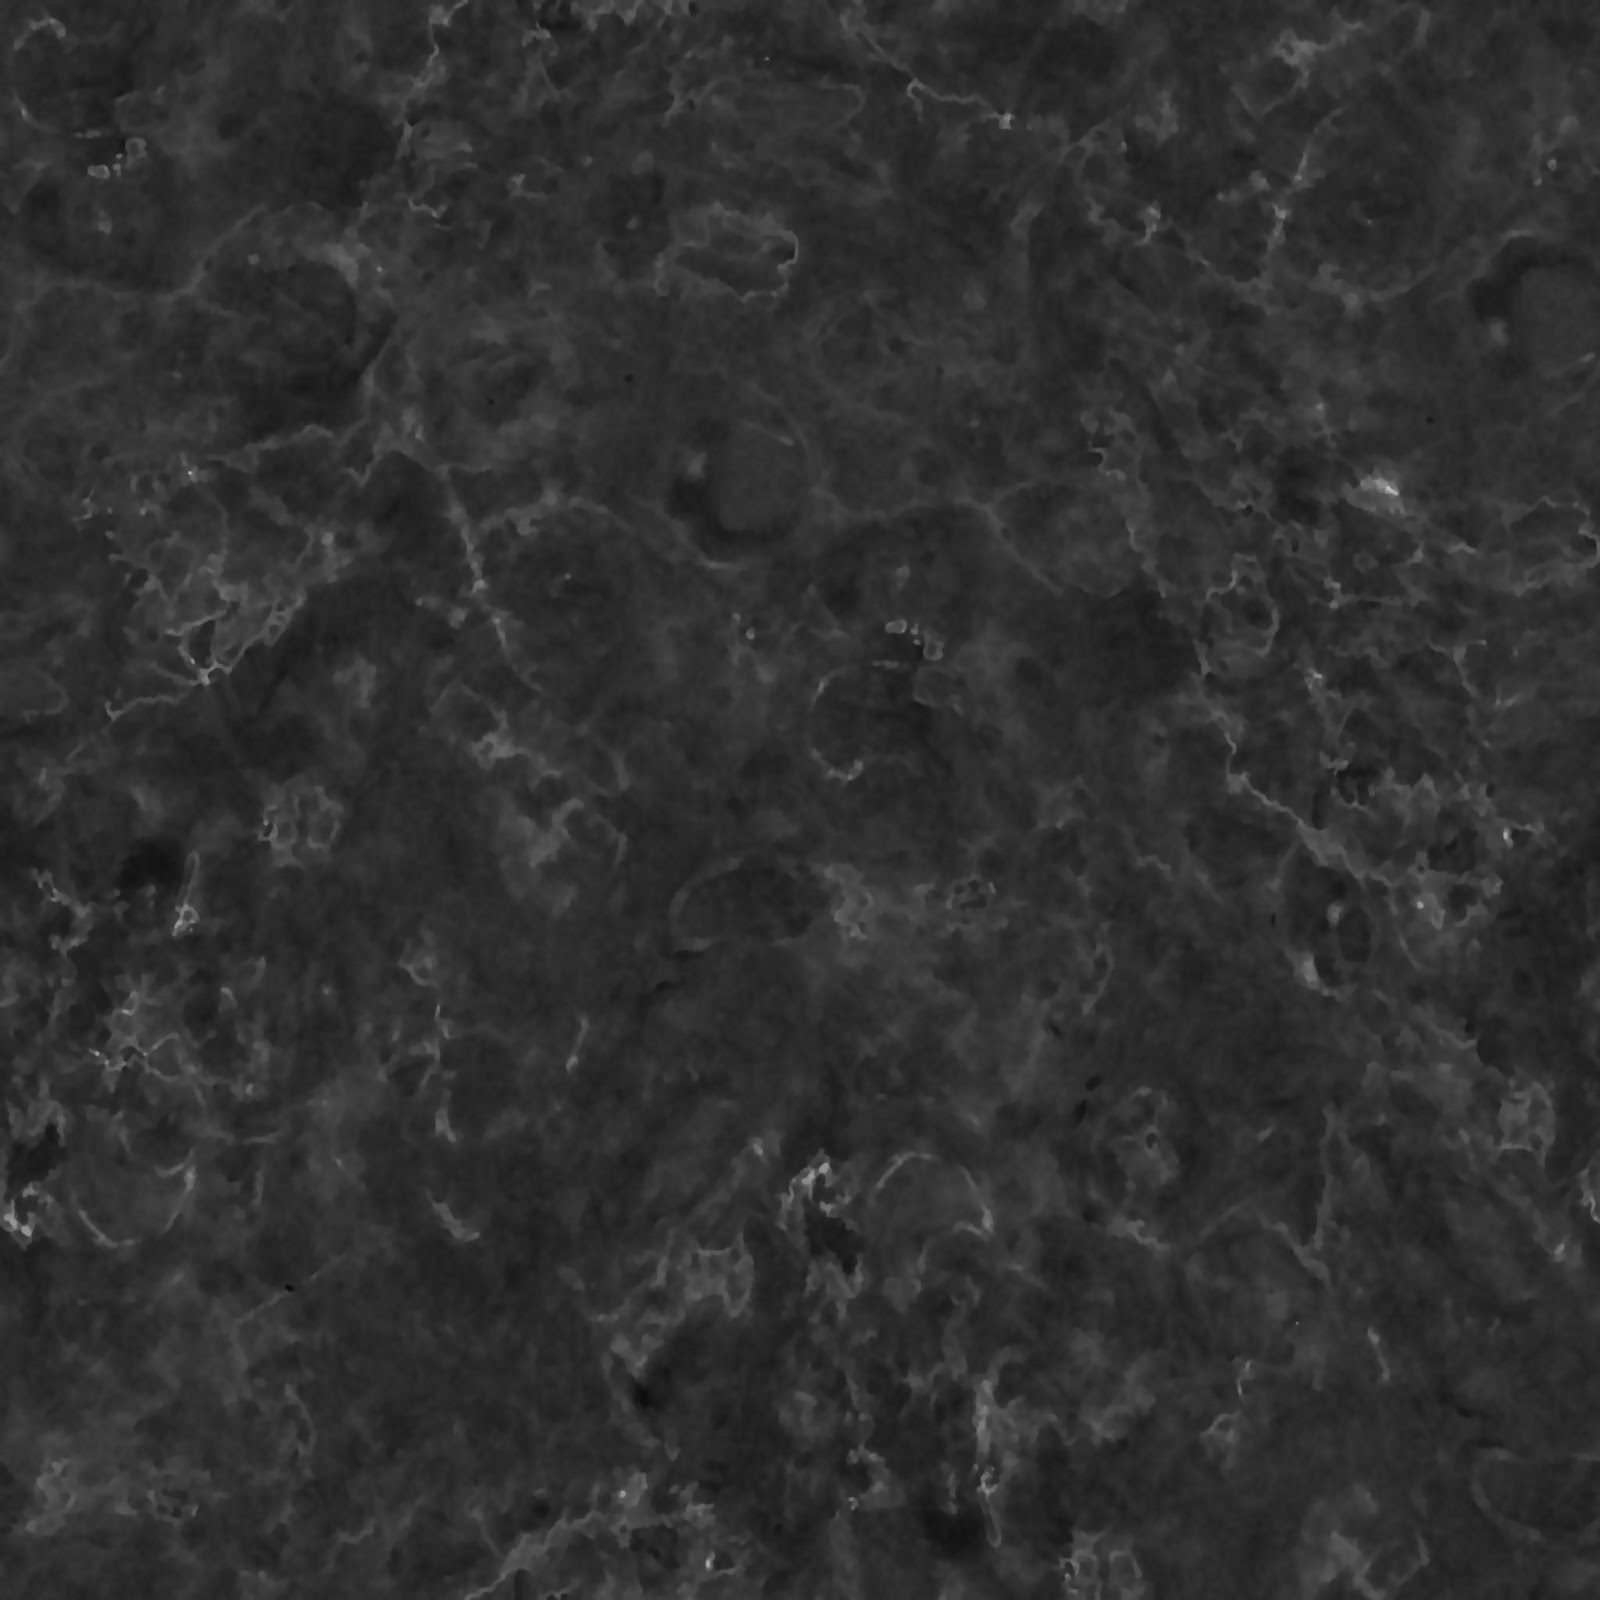 25+ Black Marble Textures | Photoshop | FreeCreatives